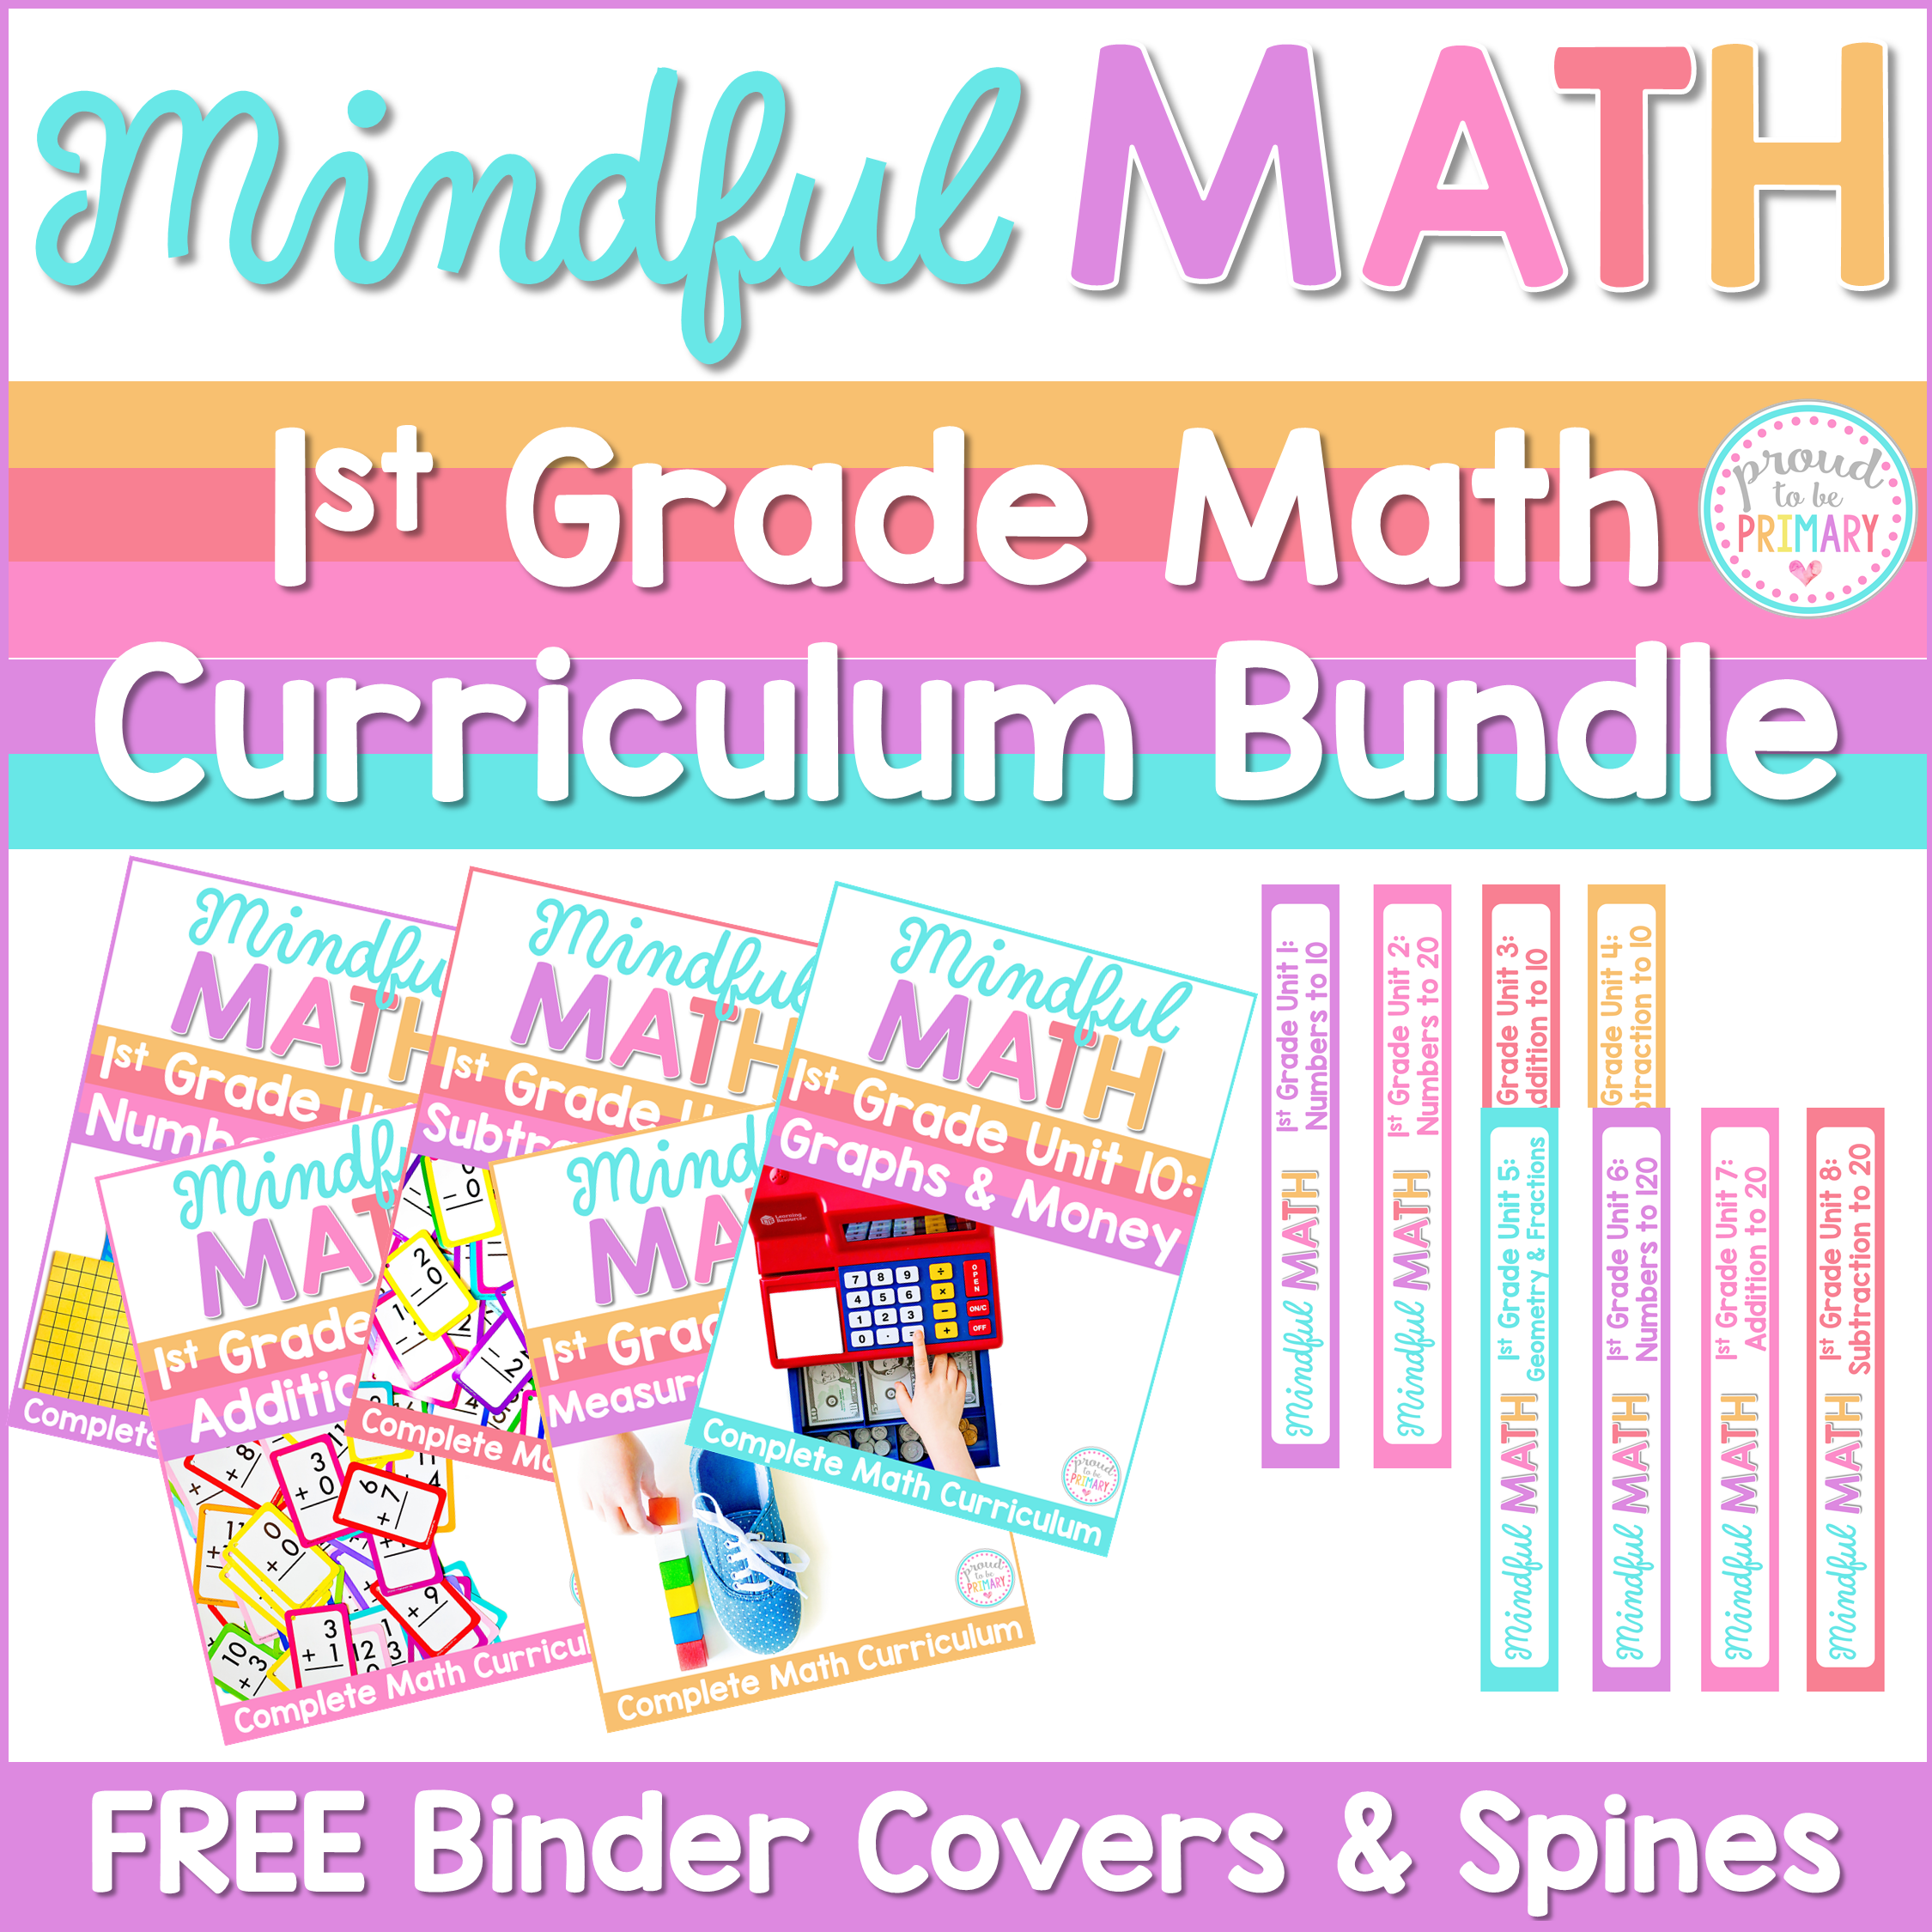 mindful math program first grade curriculum bundle binder covers and spines